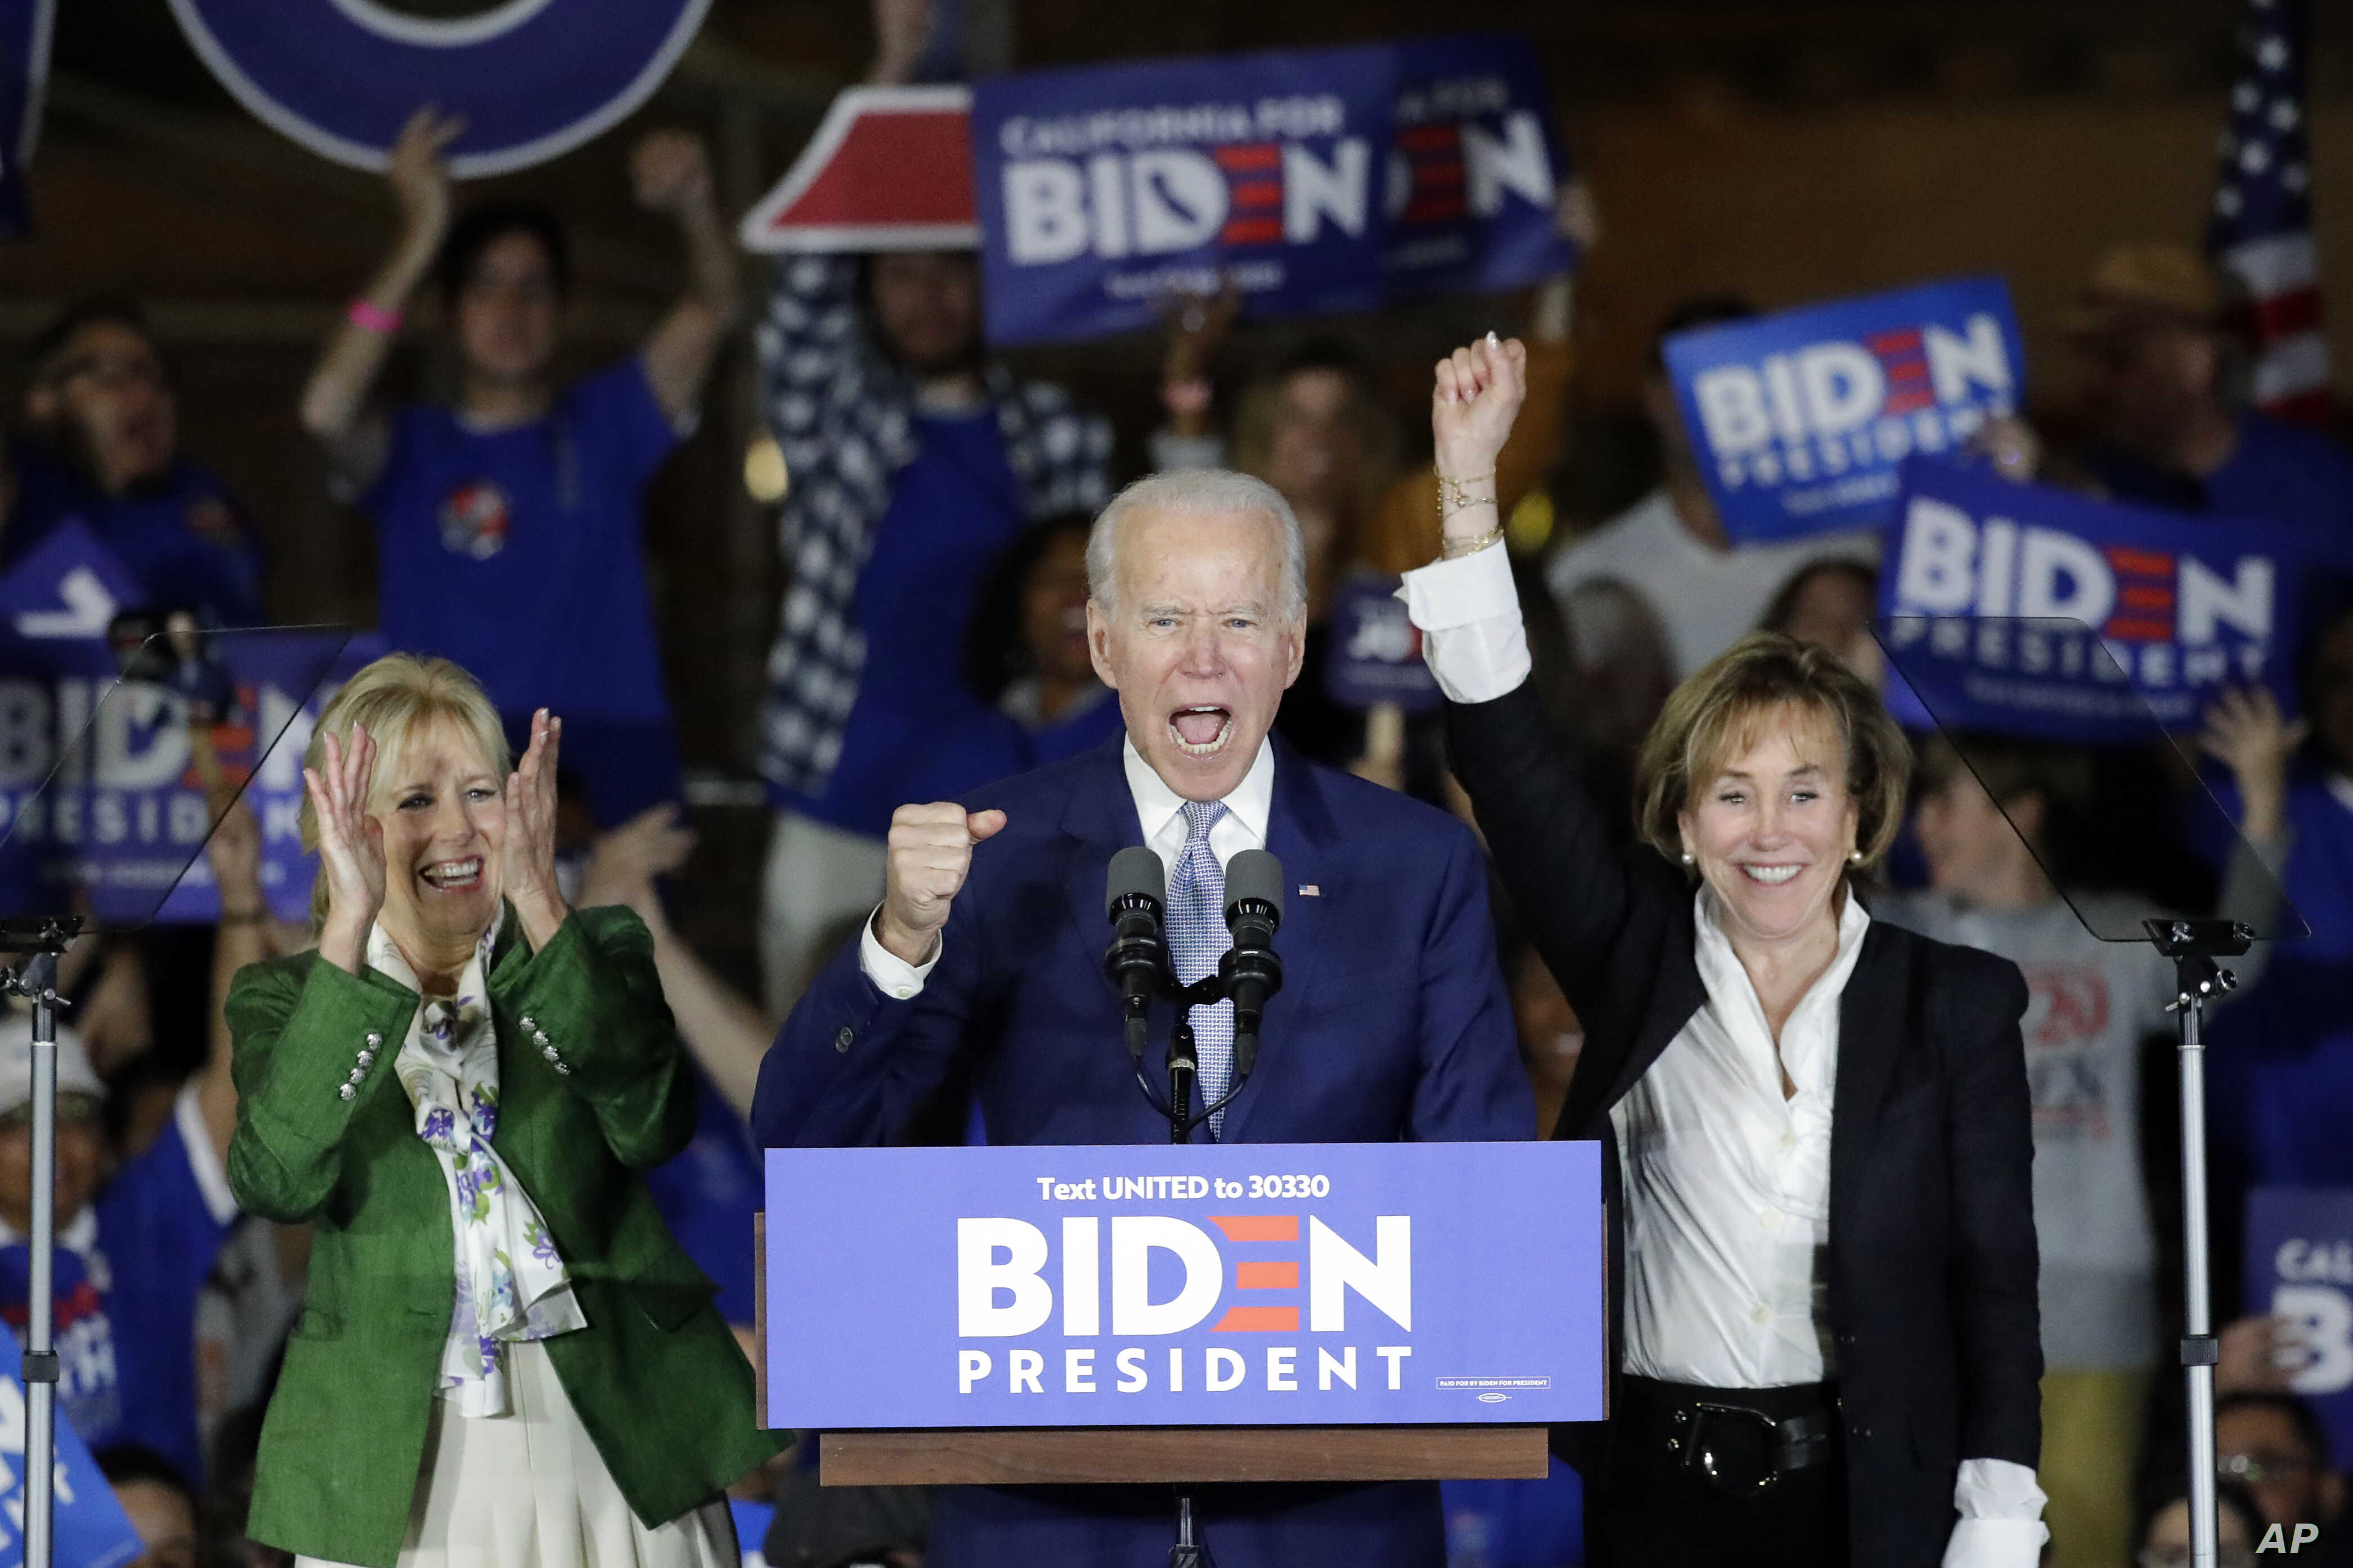 Biden's Sweeping Super Tuesday Victories Re-shape Democratic Presidential  Race | Voice of America - English